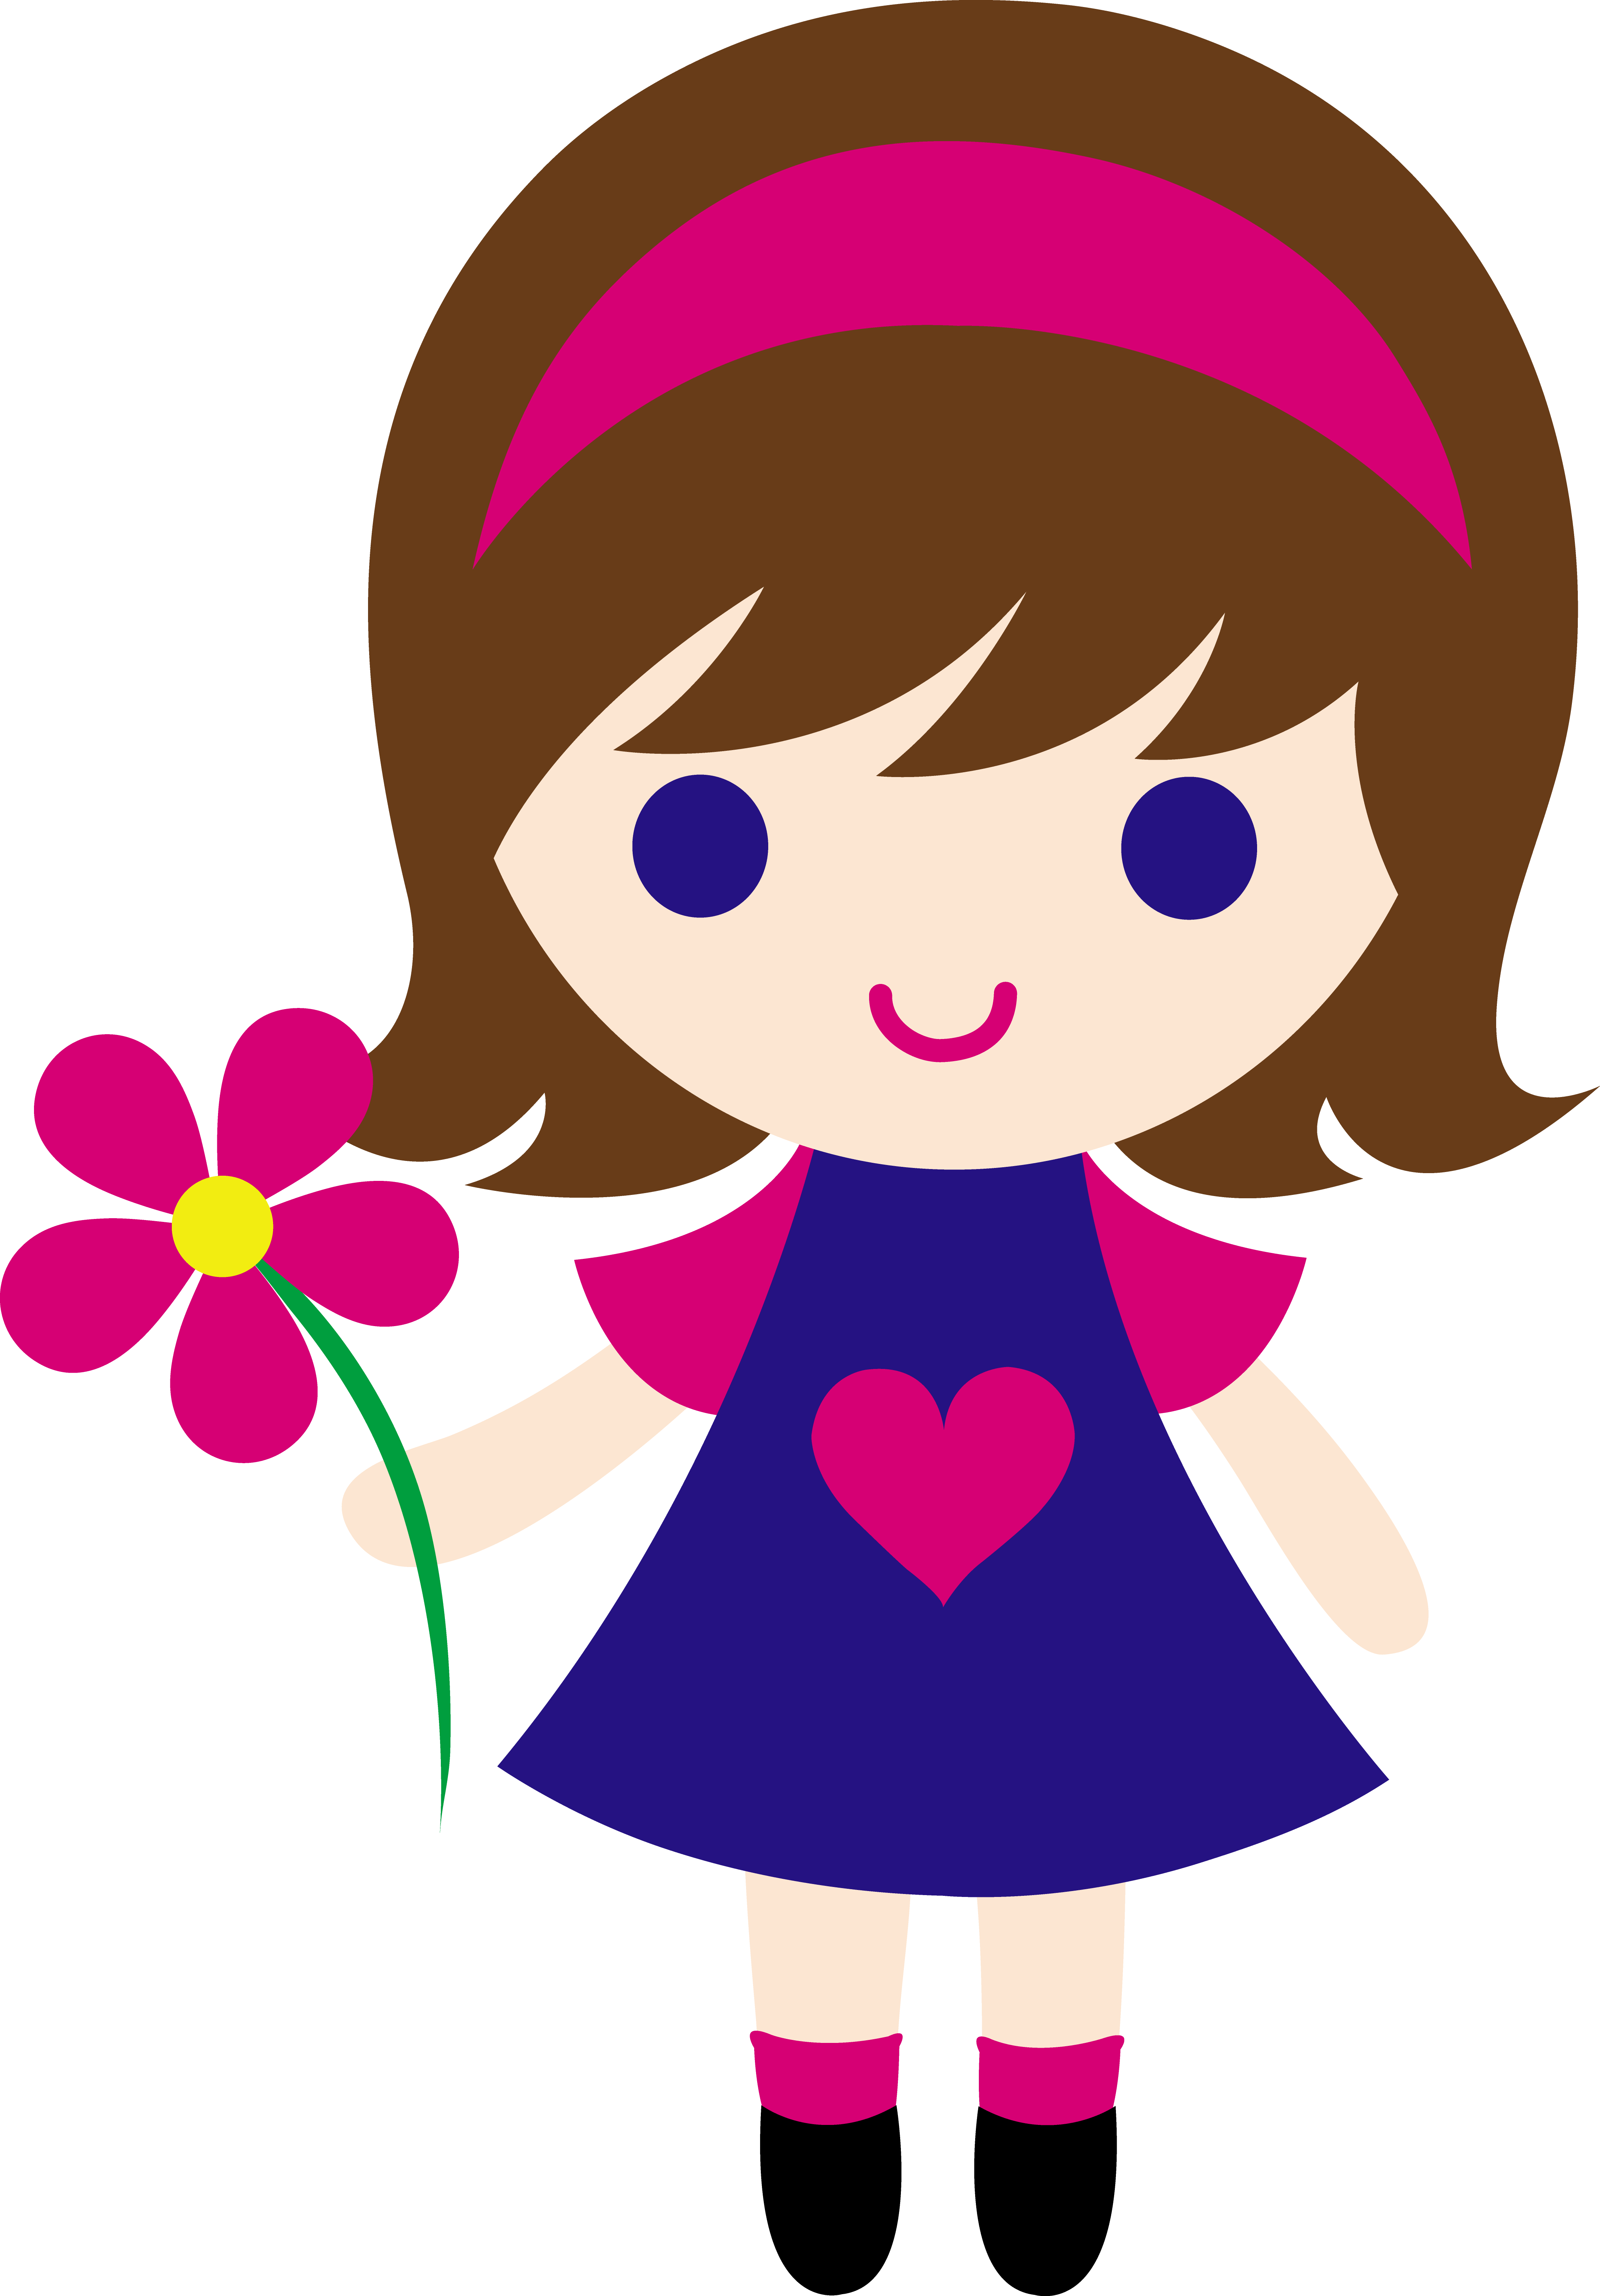 graphic stock My clip art of a little girl holding a pink daisy